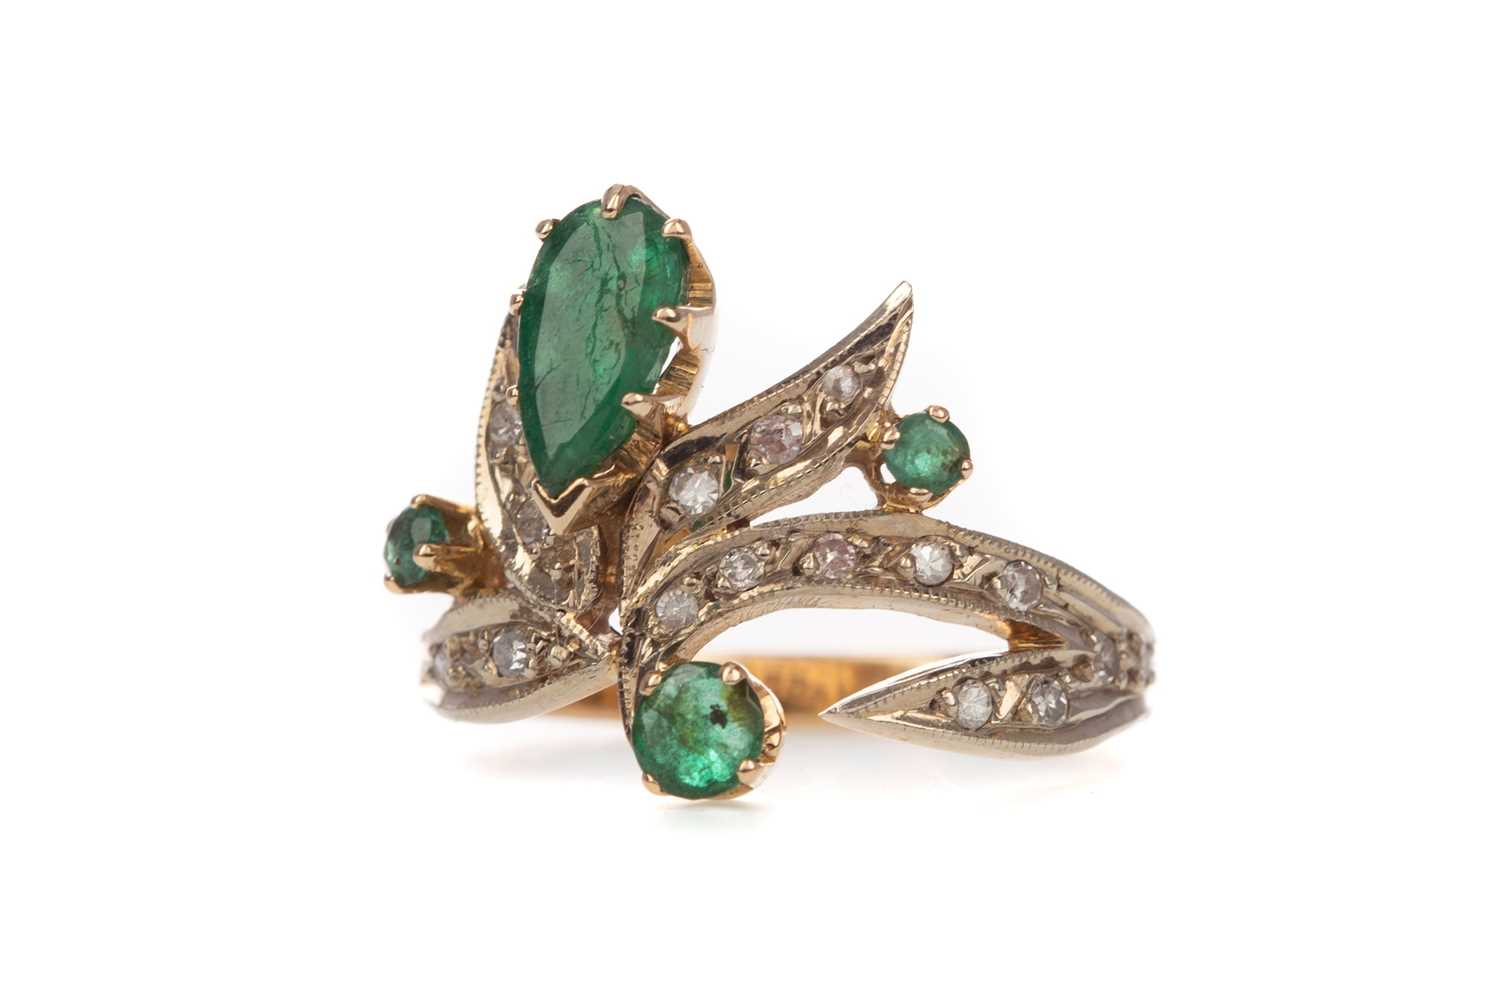 Lot 319 - AN EMERALD AND DIAMOND RING